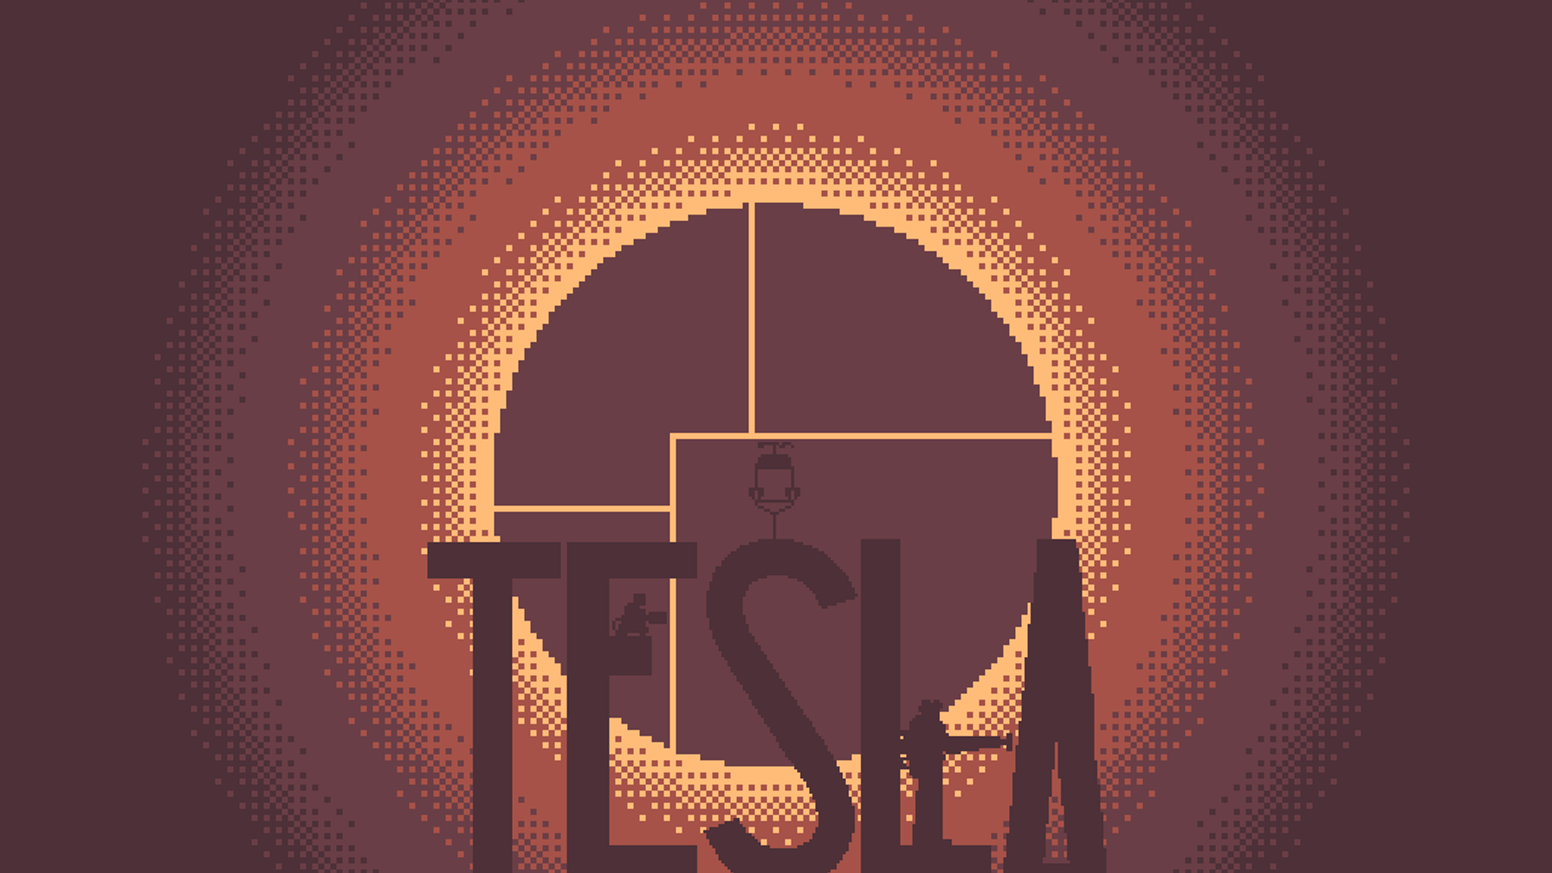 A 2D platformer game where Nikola Tesla must stop Thomas Edison from blocking out the sun, and monopolizing solar power!